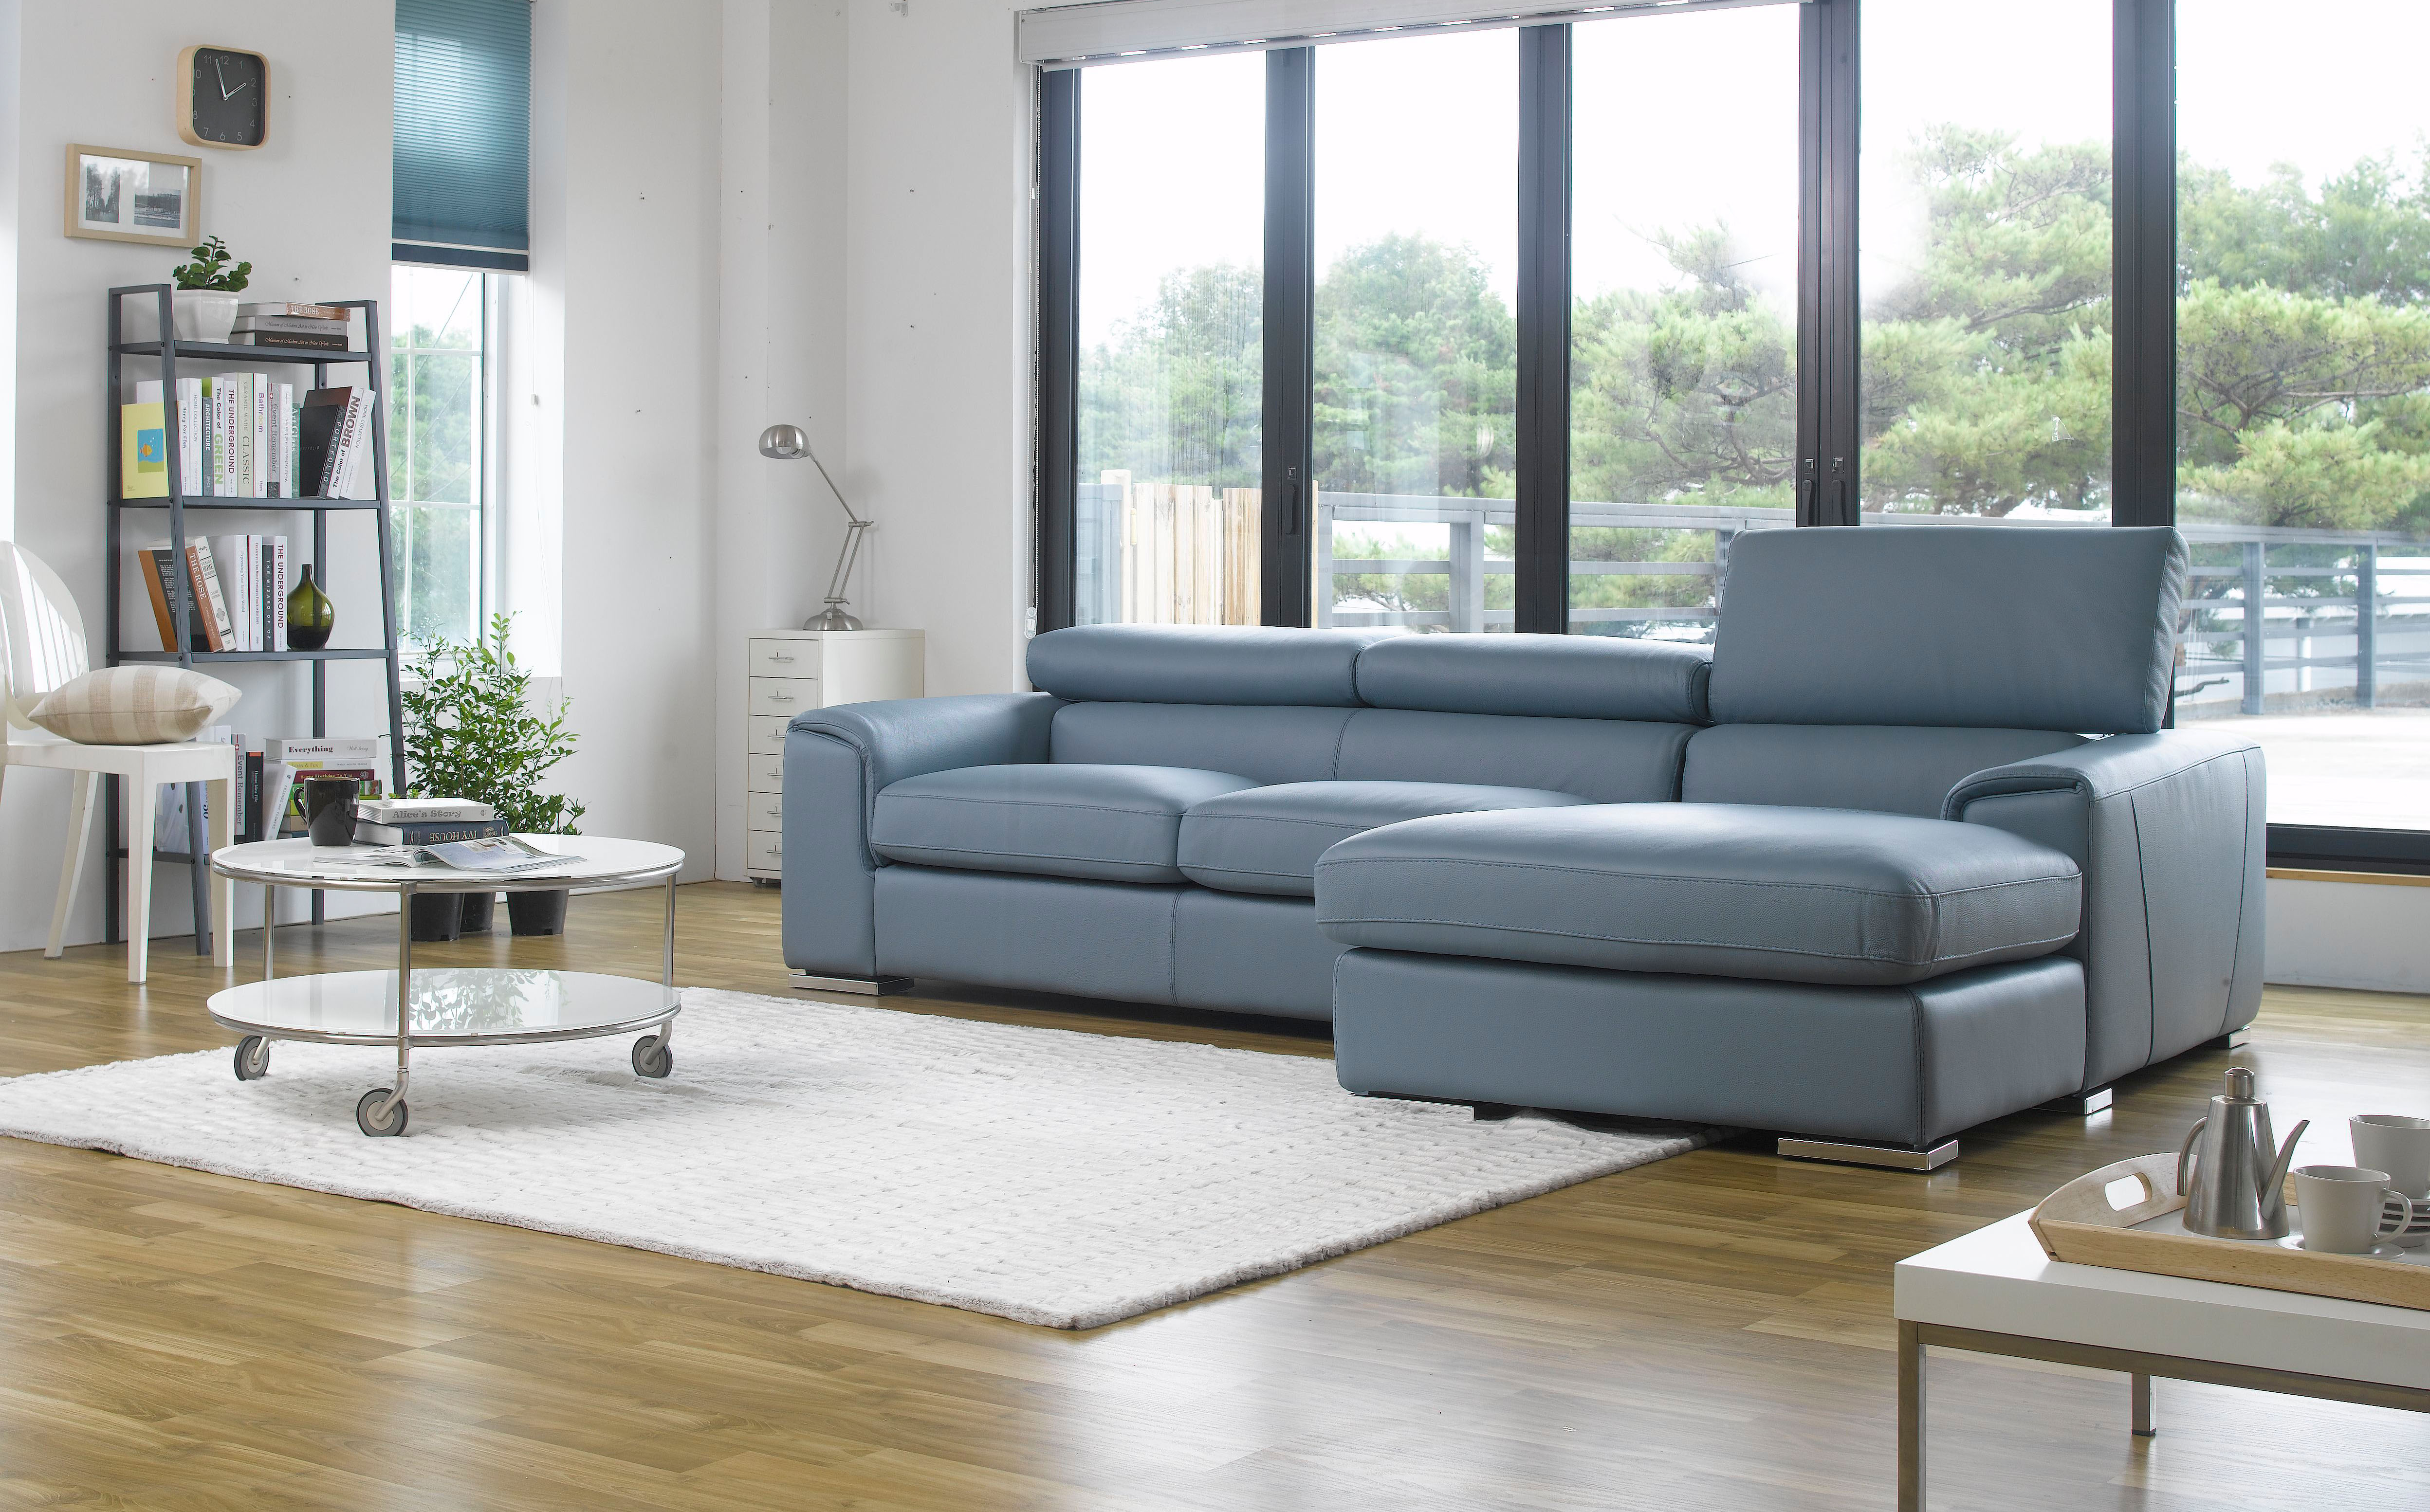 Sku 30699 Adjule Advanced Italian Top Grain Leather Sectional Sofa